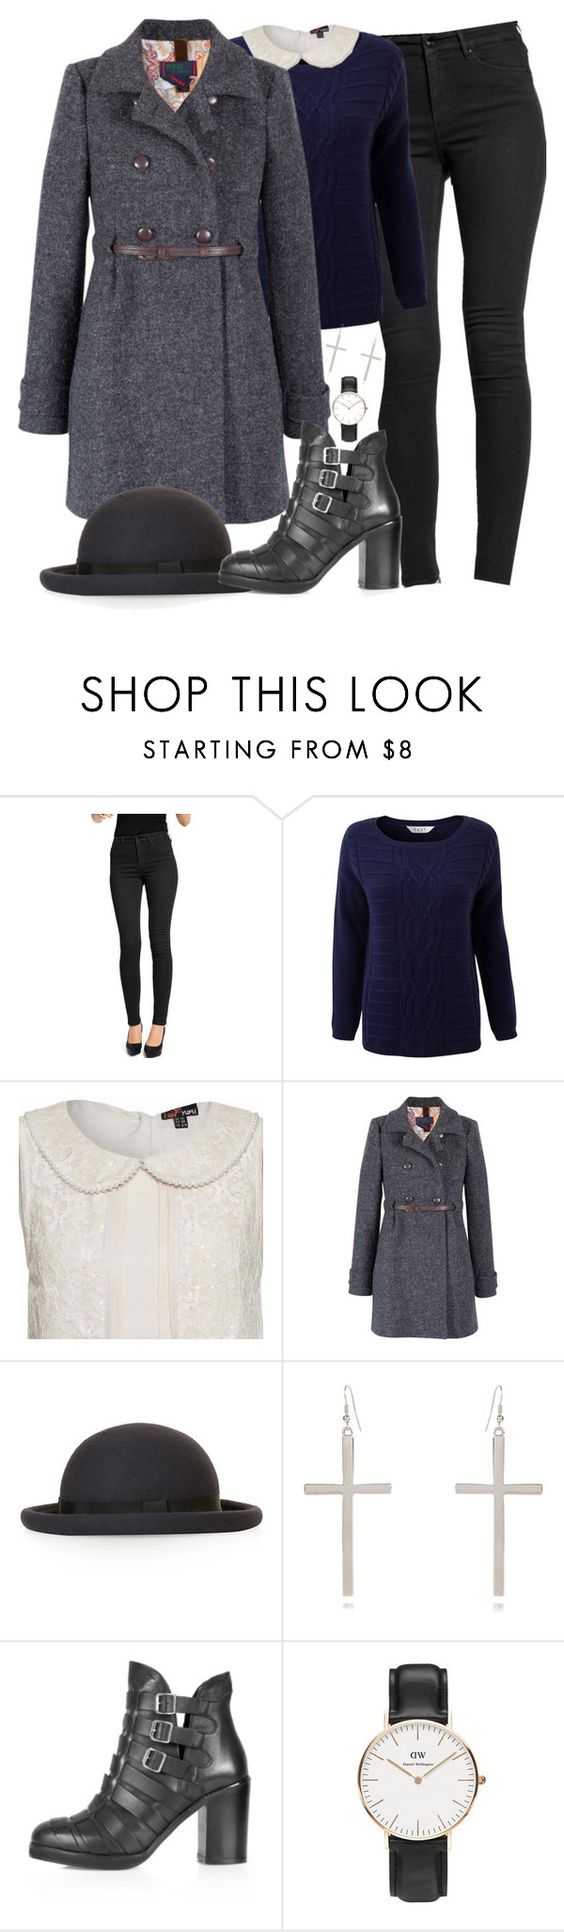 """""""Untitled #76"""" by zarryalmighty ❤ liked on Polyvore featuring H&M, EAST, Yumi, Topshop, River Island and Daniel Wellington"""